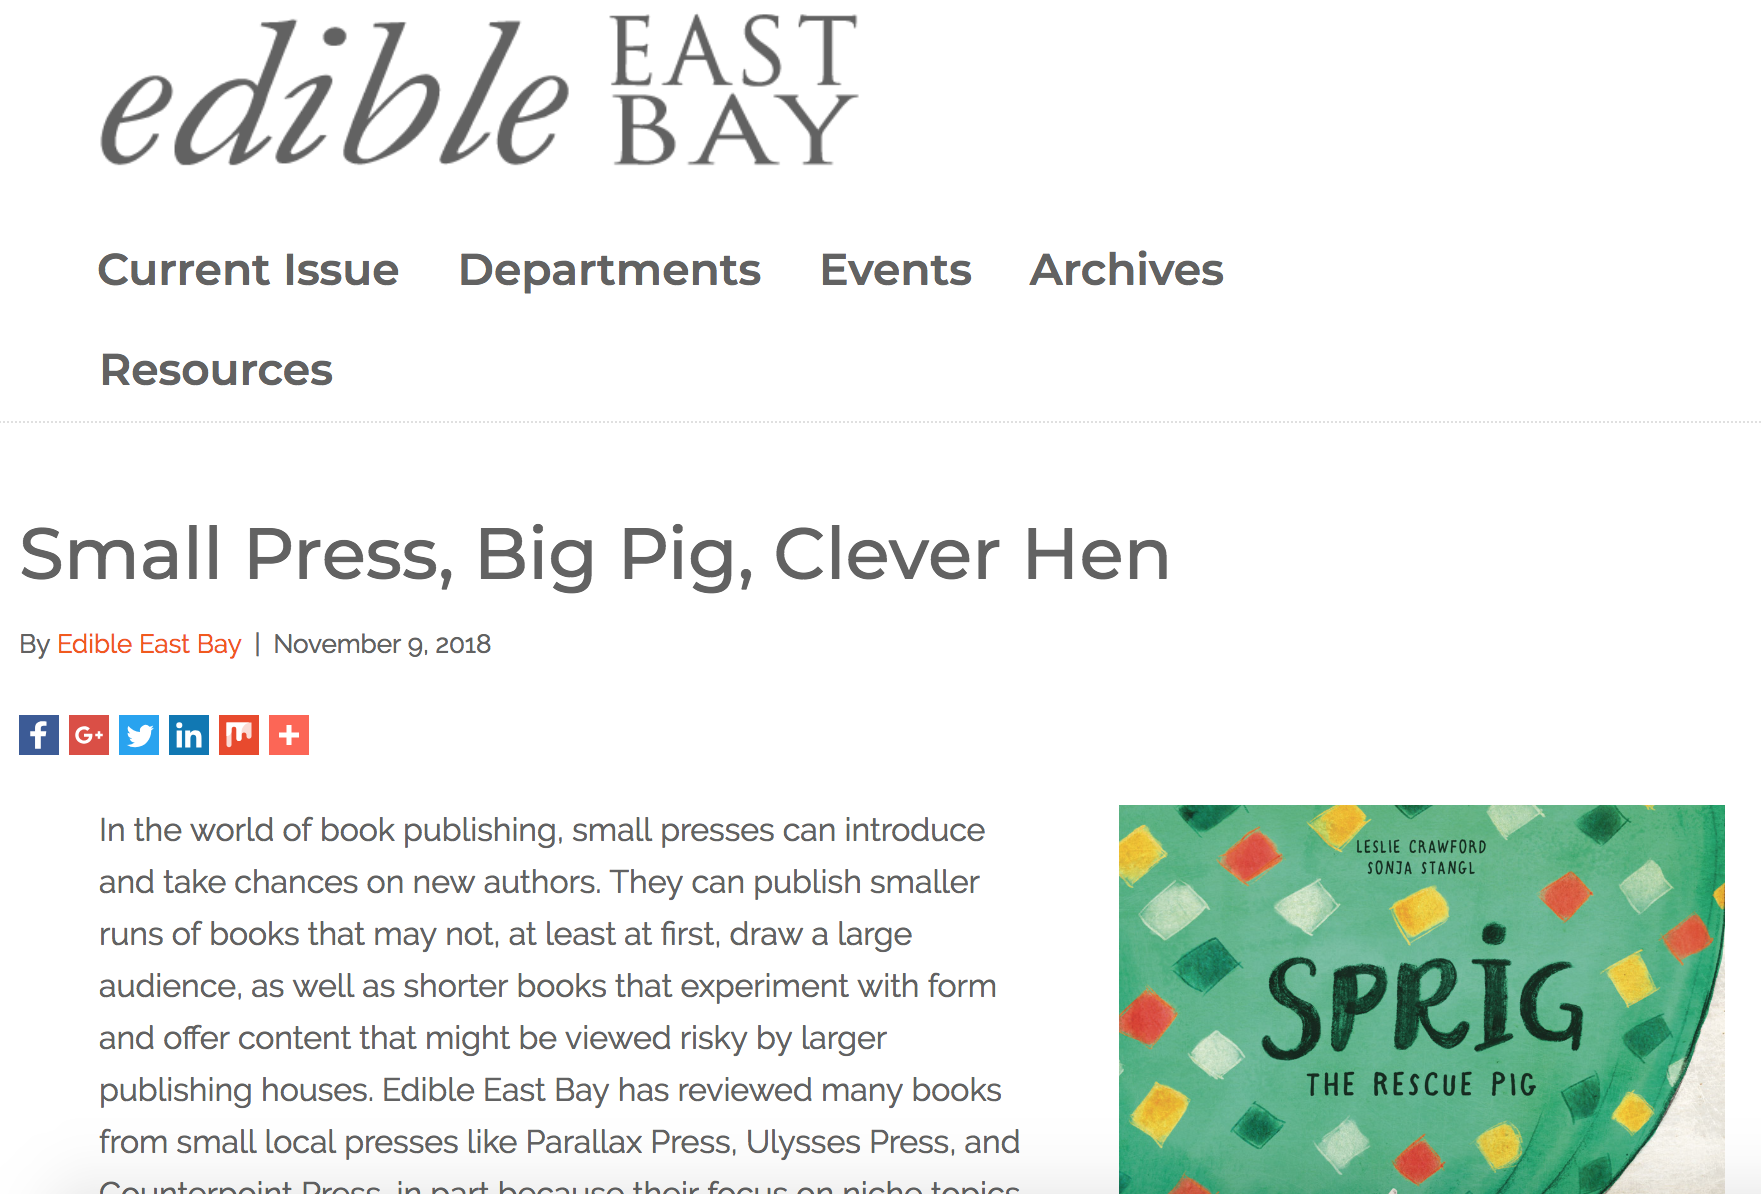 Kind words from  Edible East Bay  about Gwen & Sprig!